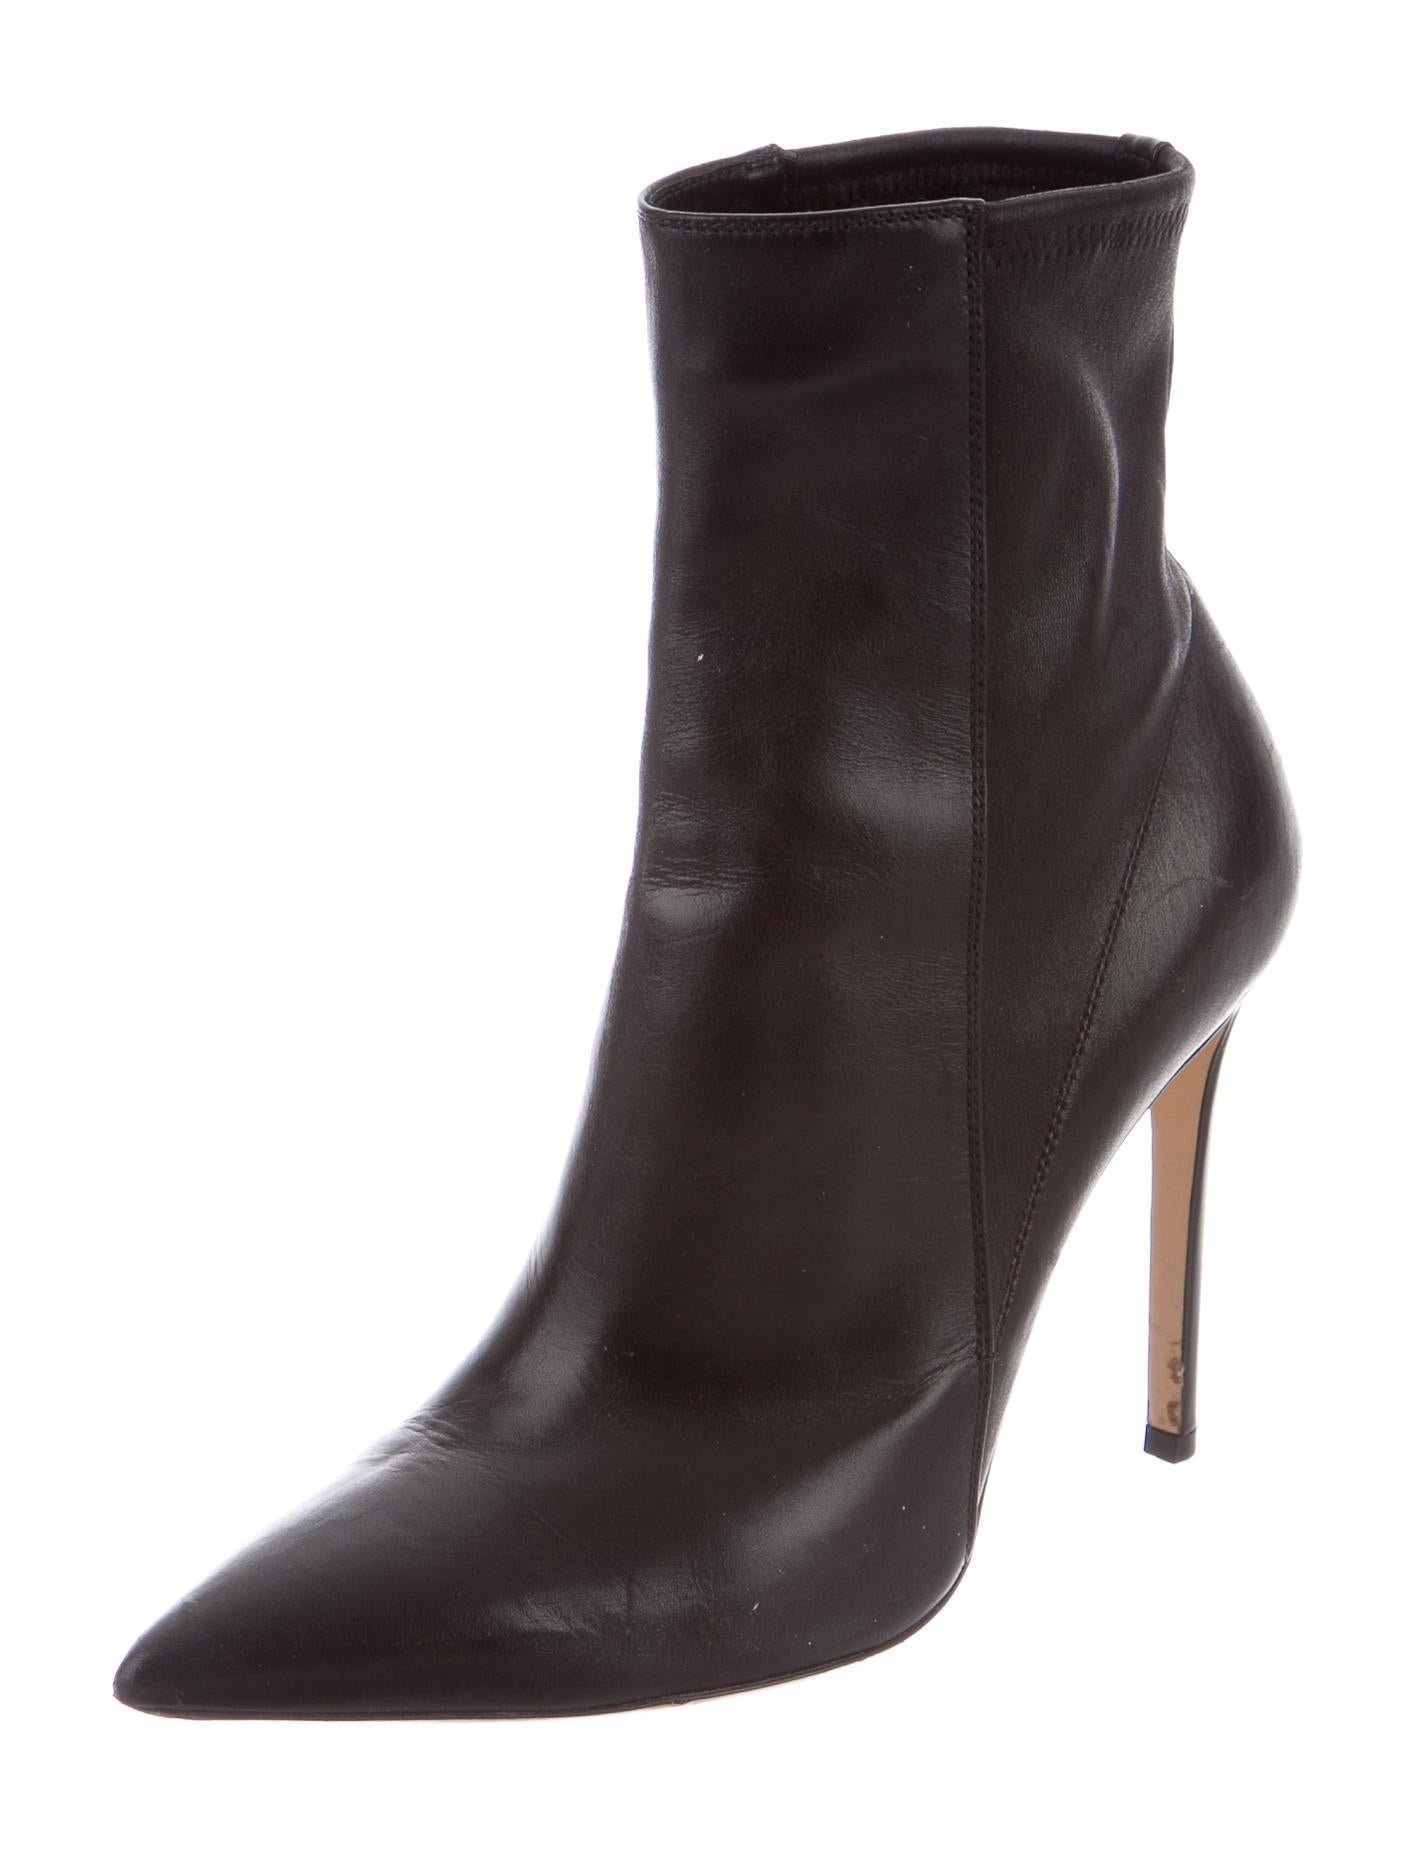 gianvito rossi leather ankle boots shoes git23143 the realreal. Black Bedroom Furniture Sets. Home Design Ideas